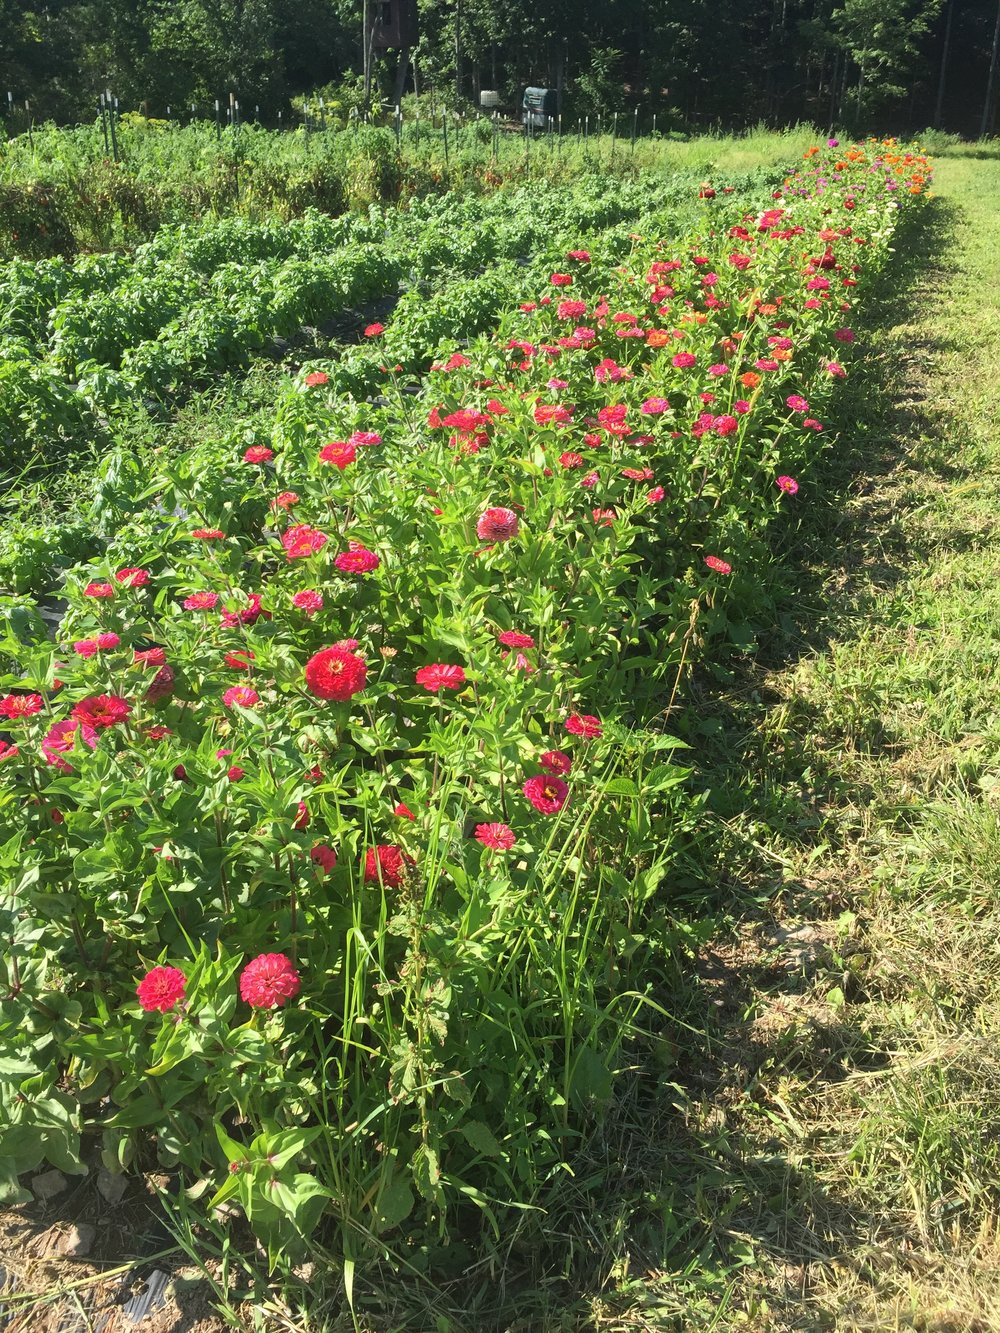 Zinnia field at East Durham Farms